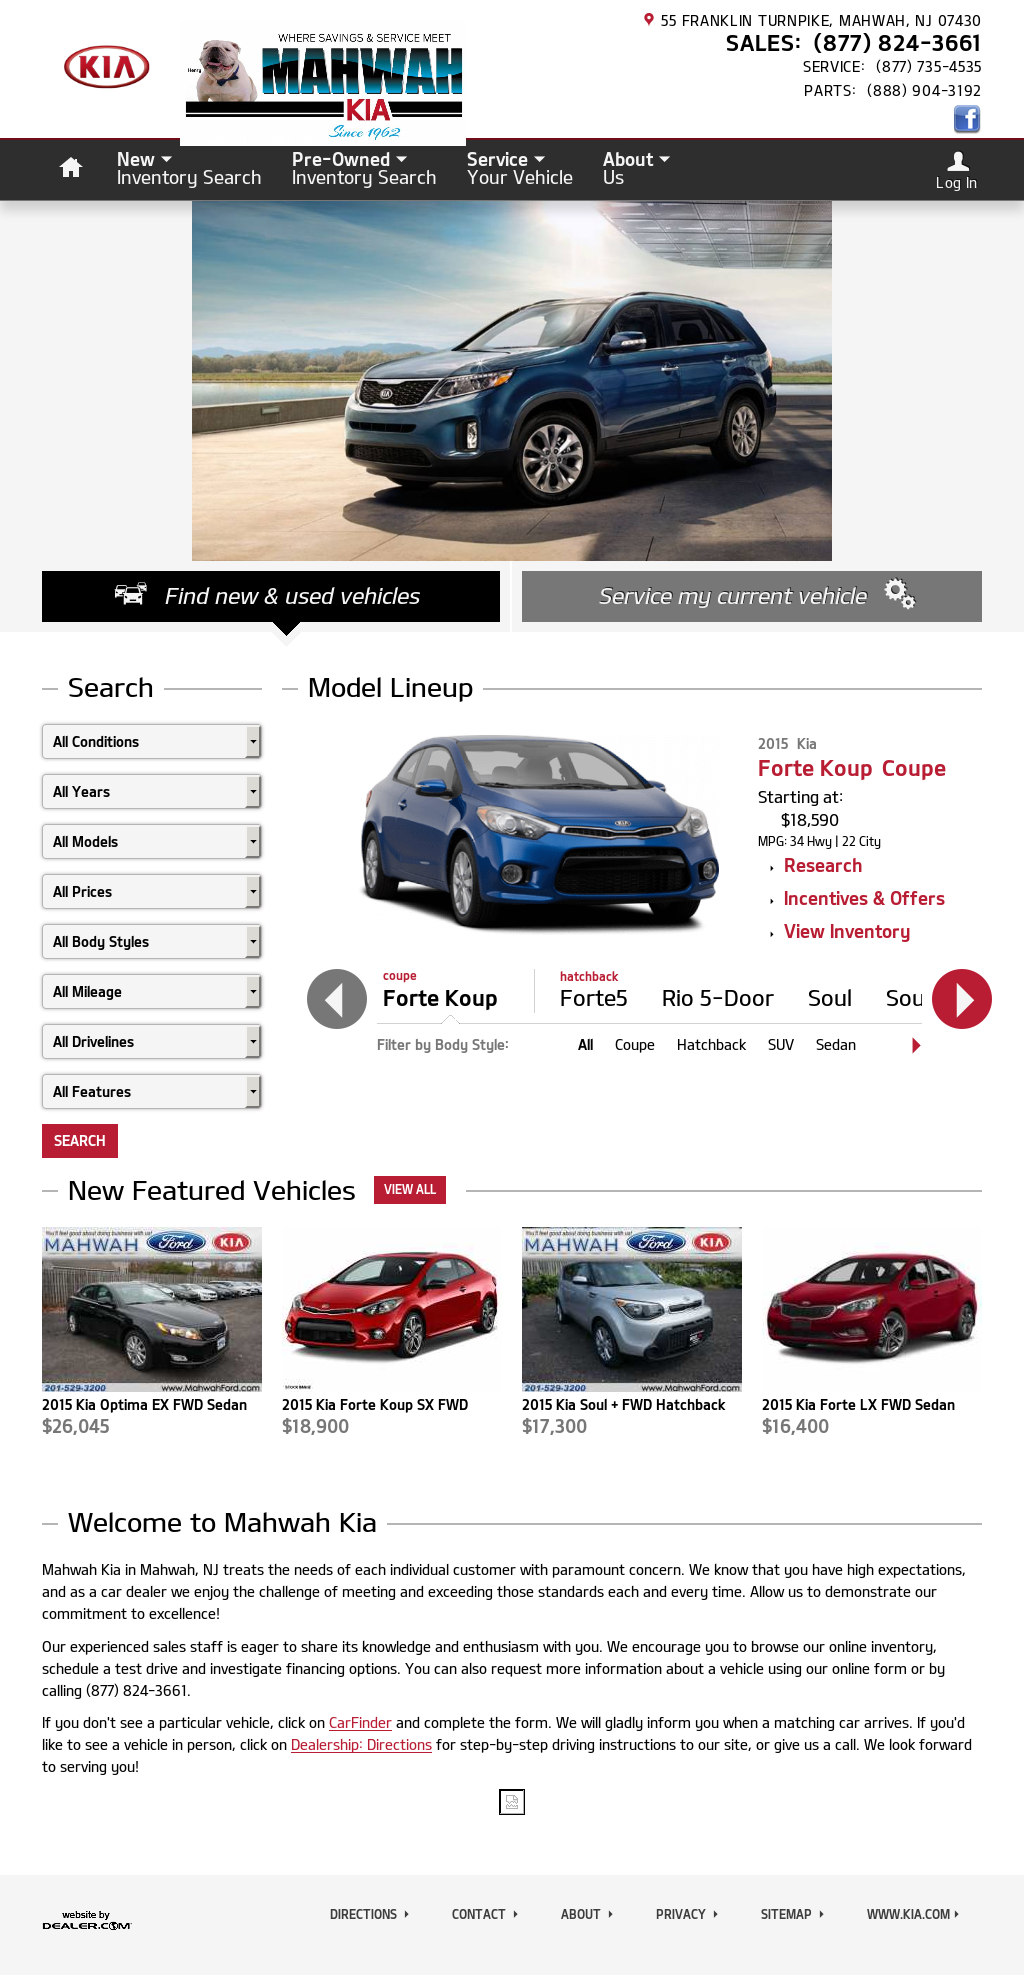 Mahwah Ford Service >> Mahwah Ford Kia Sales Service Competitors Revenue And Employees